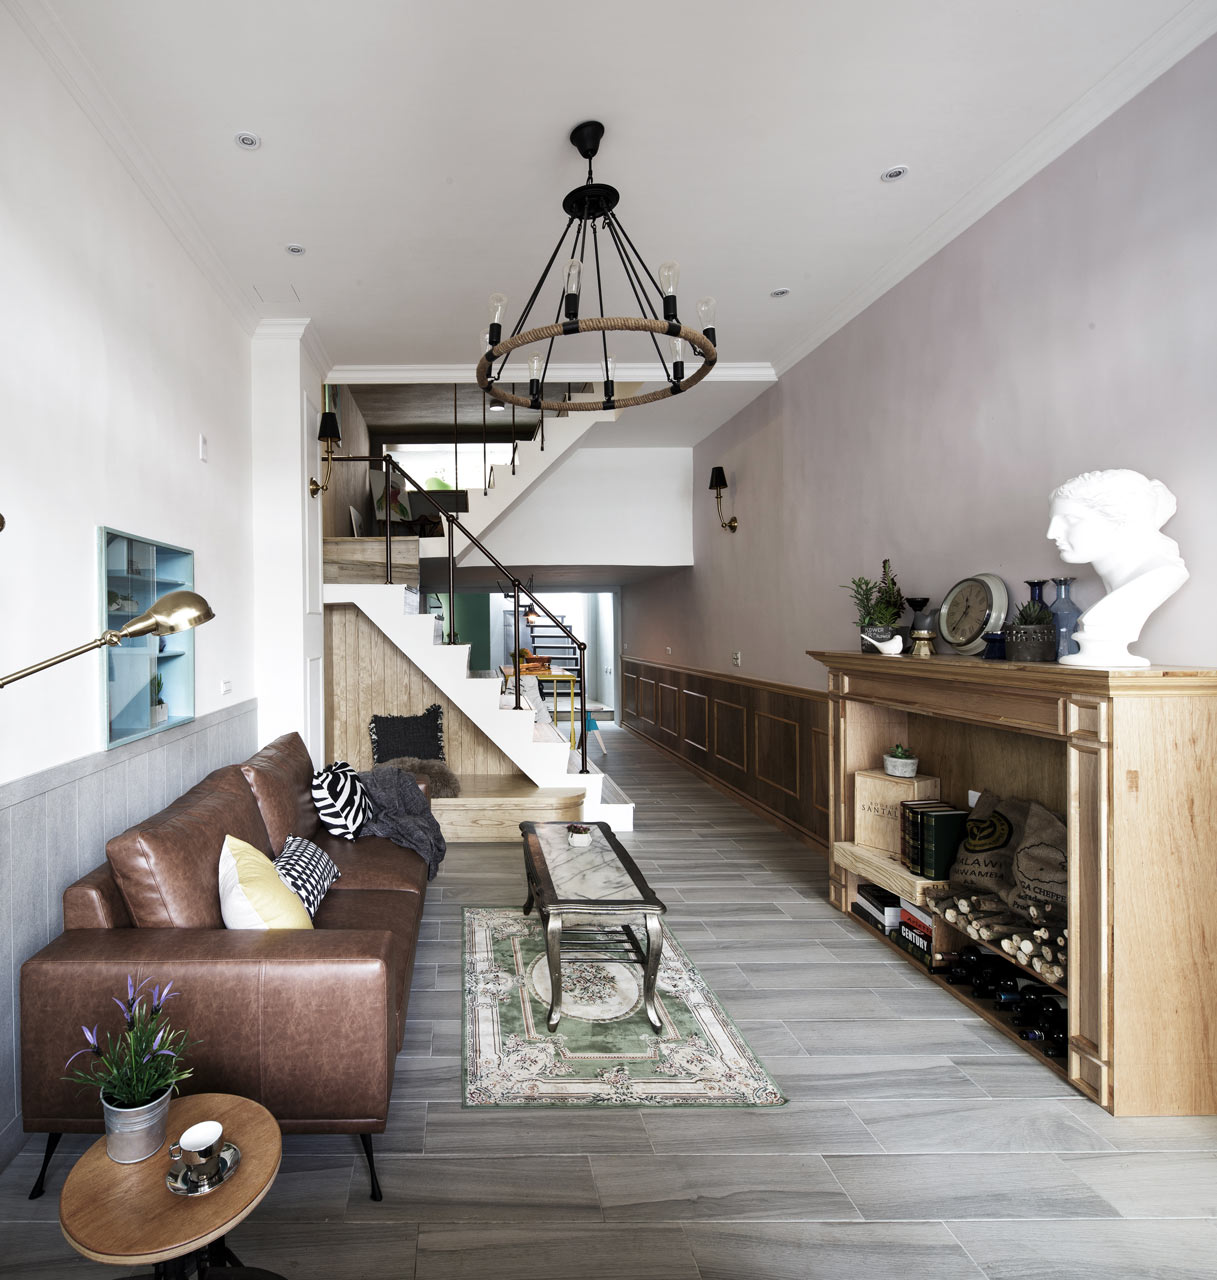 An Historic House in Taiwan with a Central Sunroom